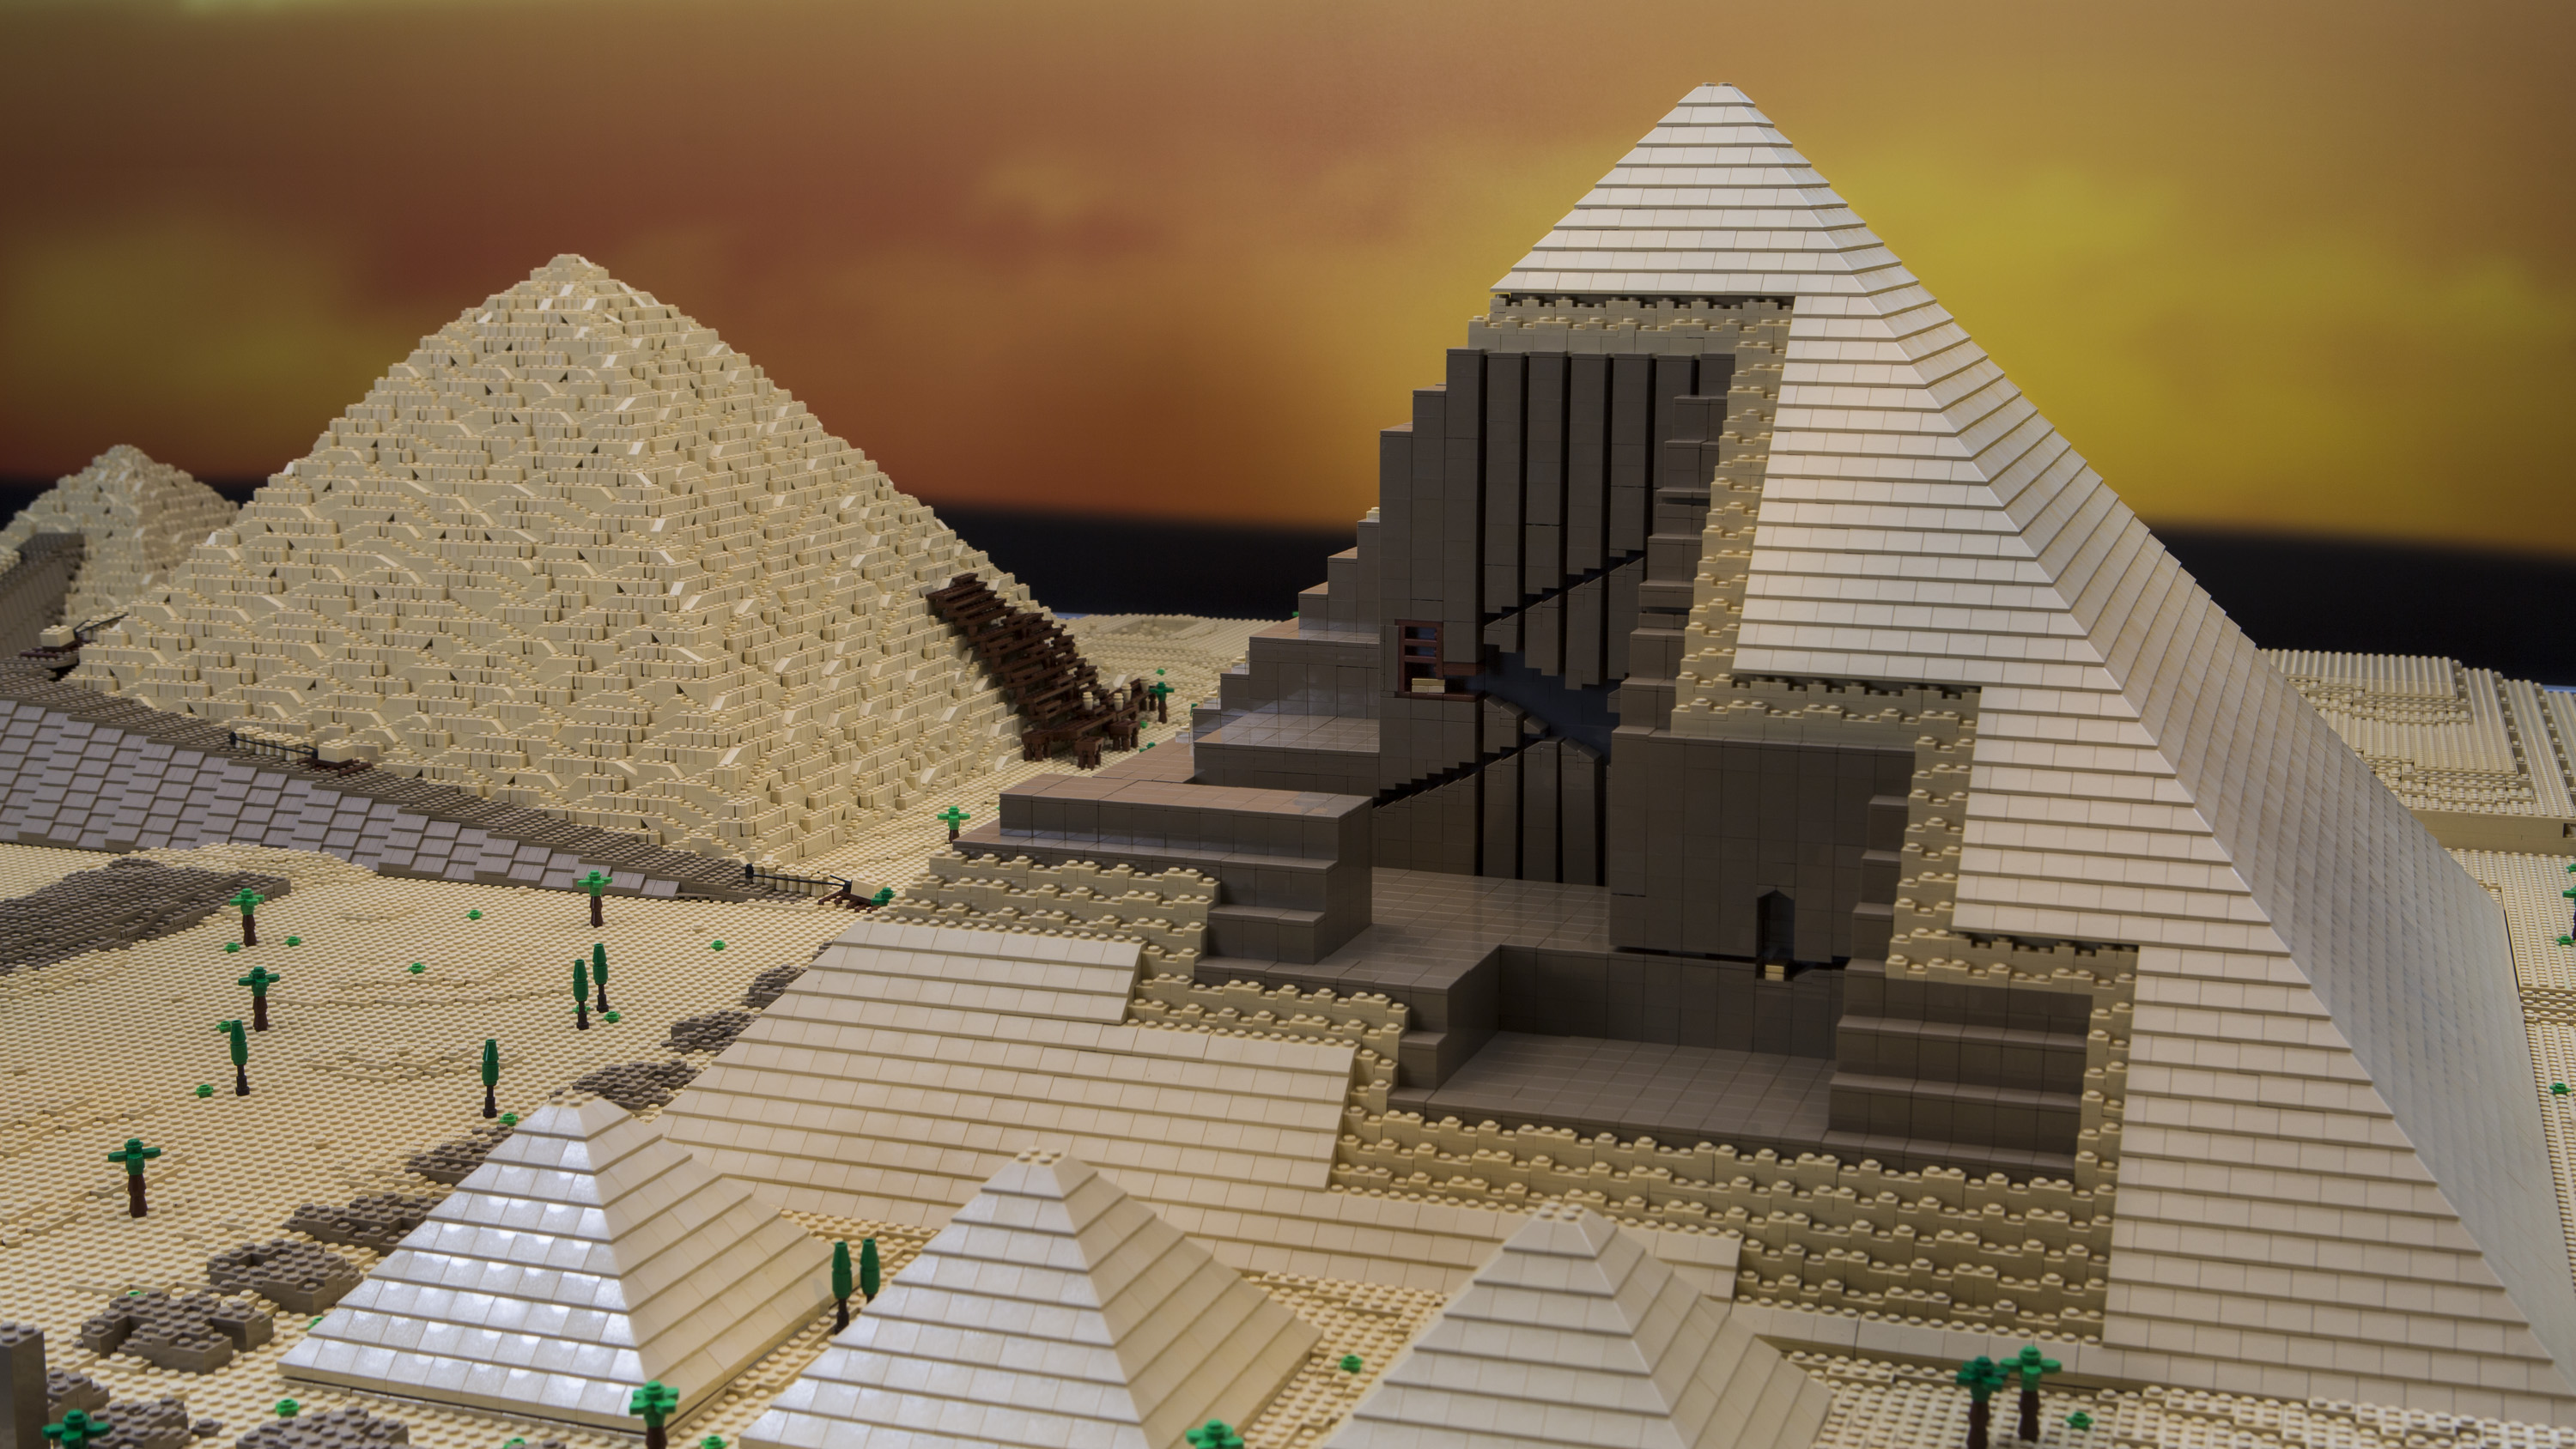 The Great Pyramid of Giza made of LEGO bricks